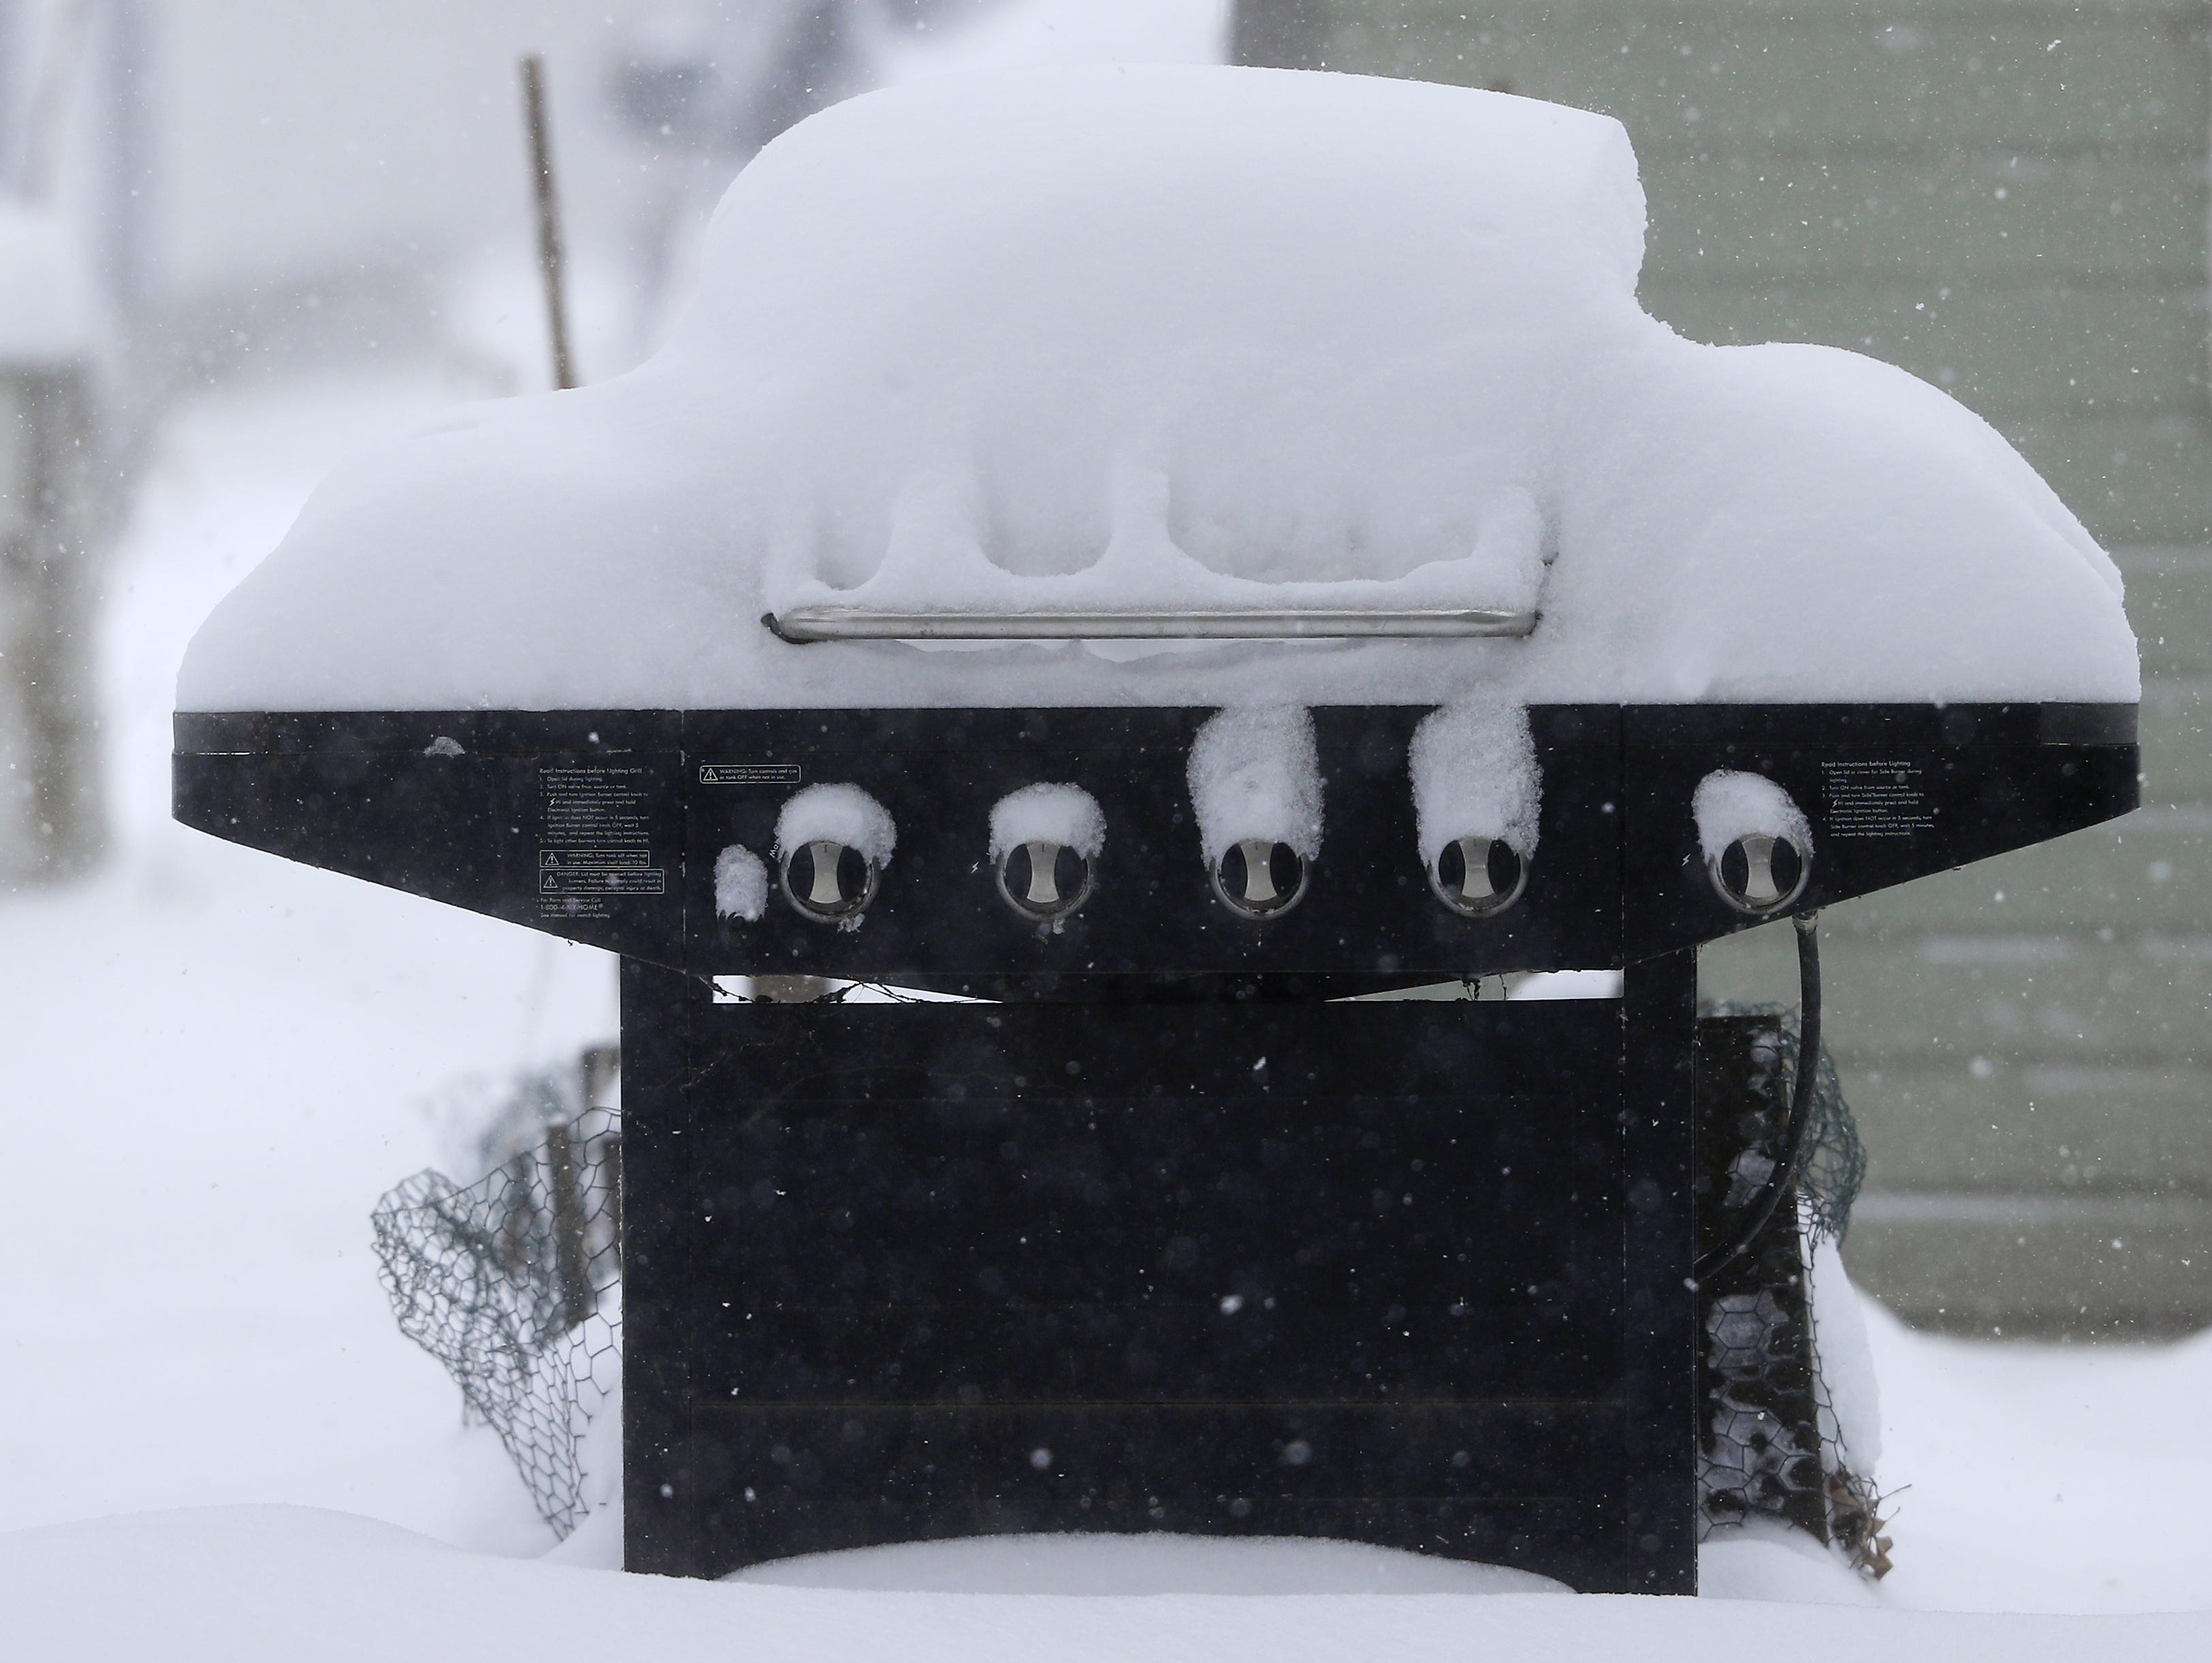 A grill is covered in snow during a snowstorm on Monday, Jan. 28, 2019, in Green Bay, Wis.